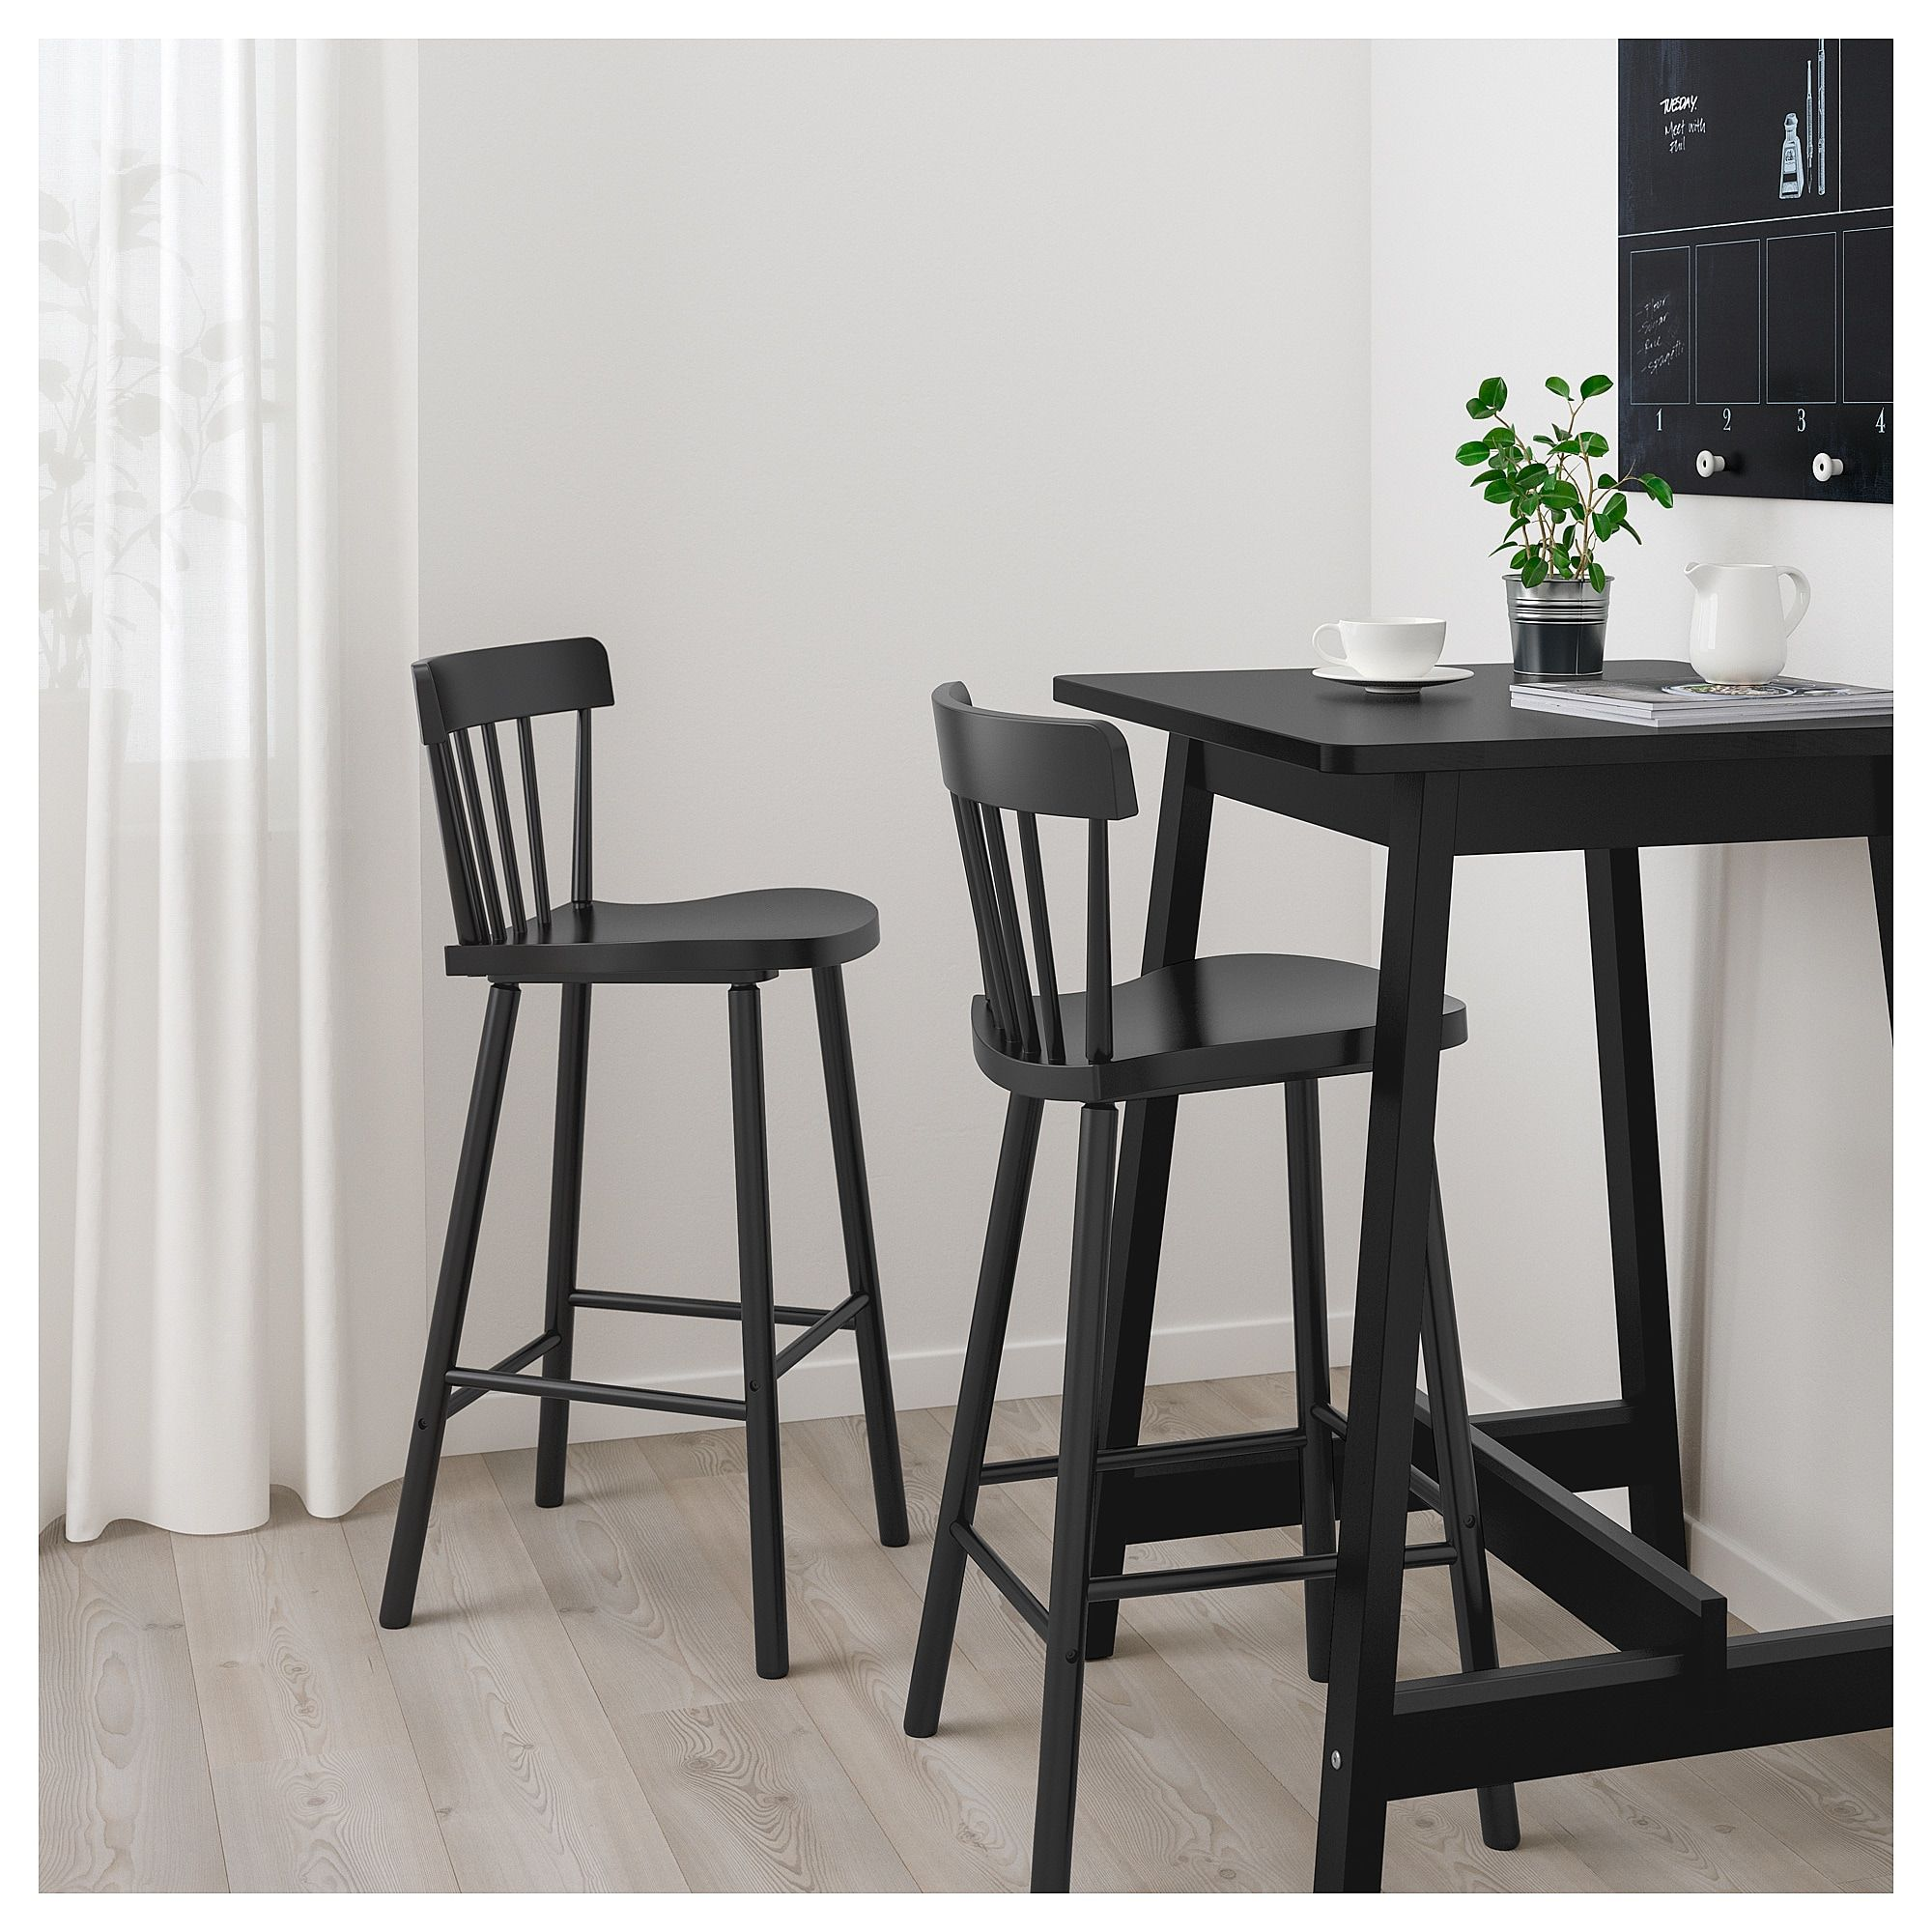 Ikea Norråker Norraryd Bar Table And 2 Bar Stools Black